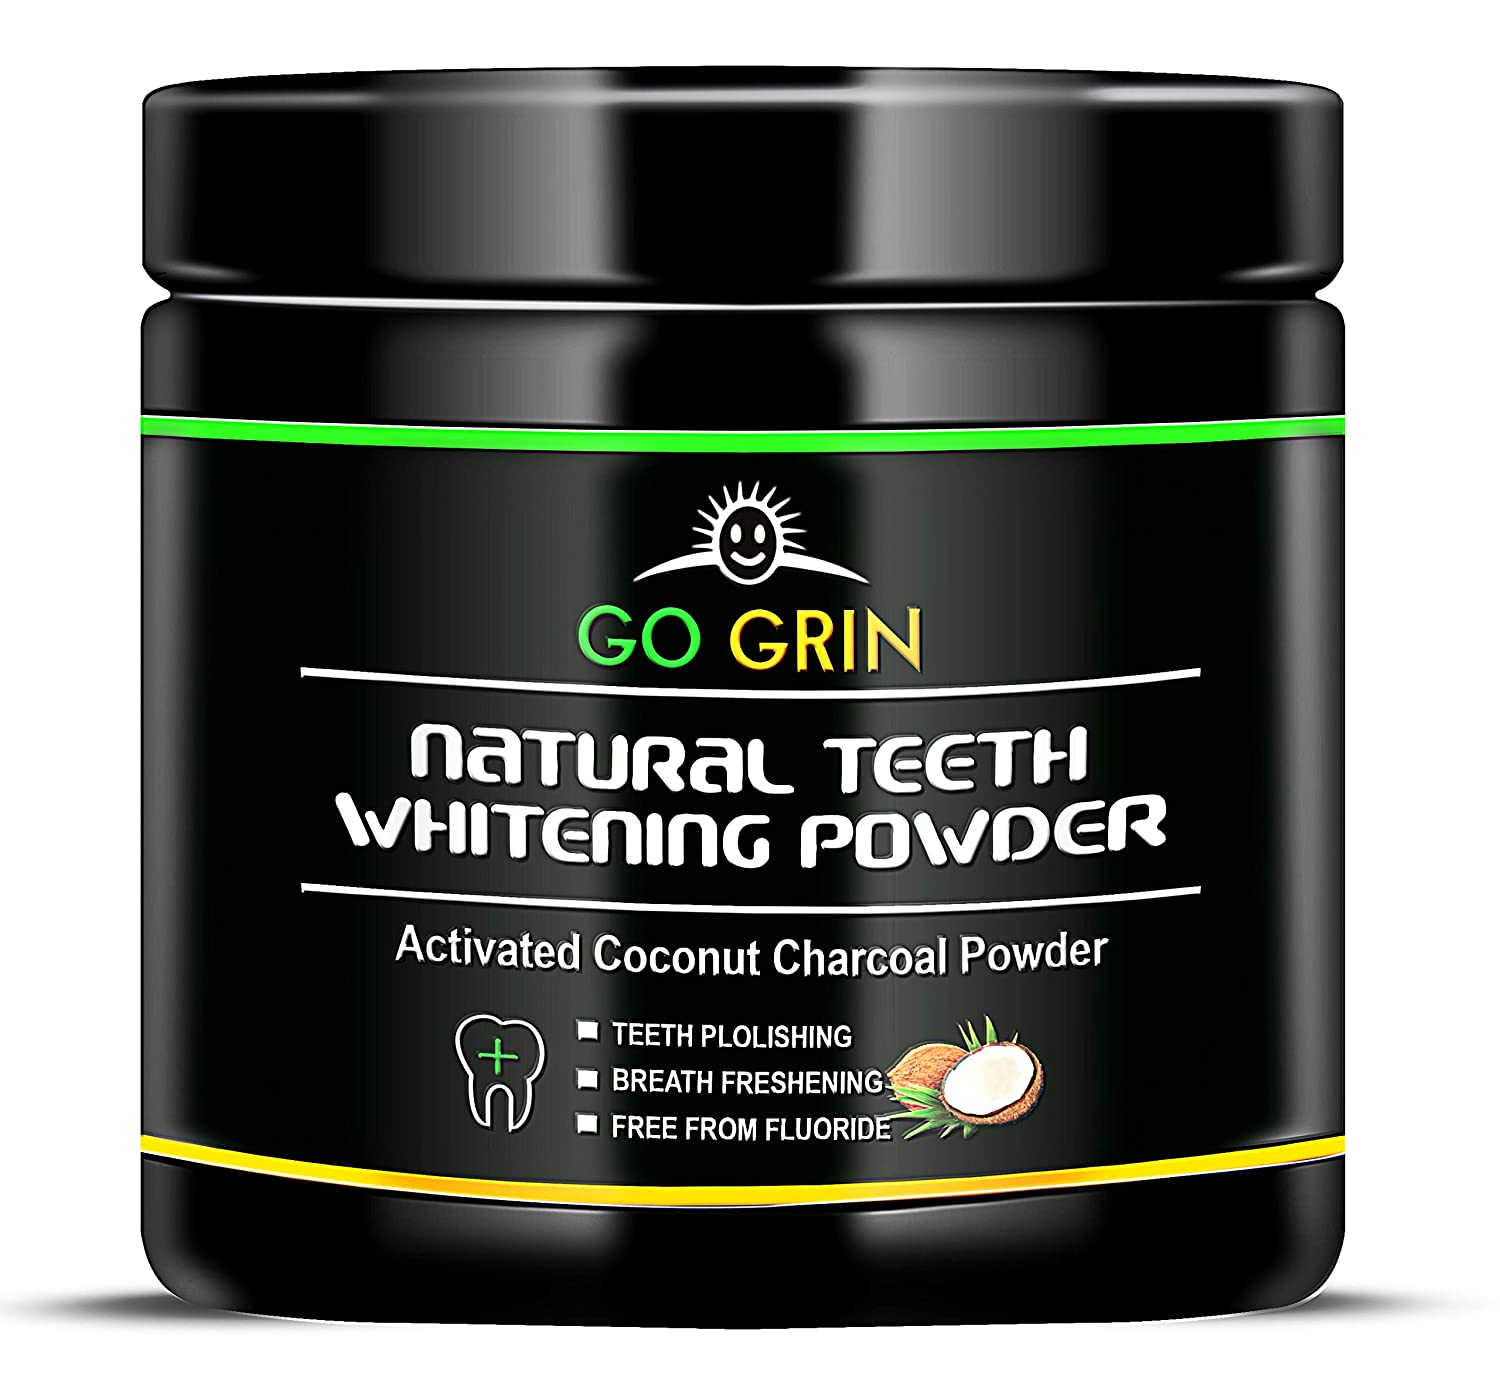 Activated Charcoal Teeth Whitening Powder 60 gram all Natural Organic Calcium Bentonite Clay Remineralizing Peppermint Oil for Flavor Freshens Breath Active Black Charcole Whitener